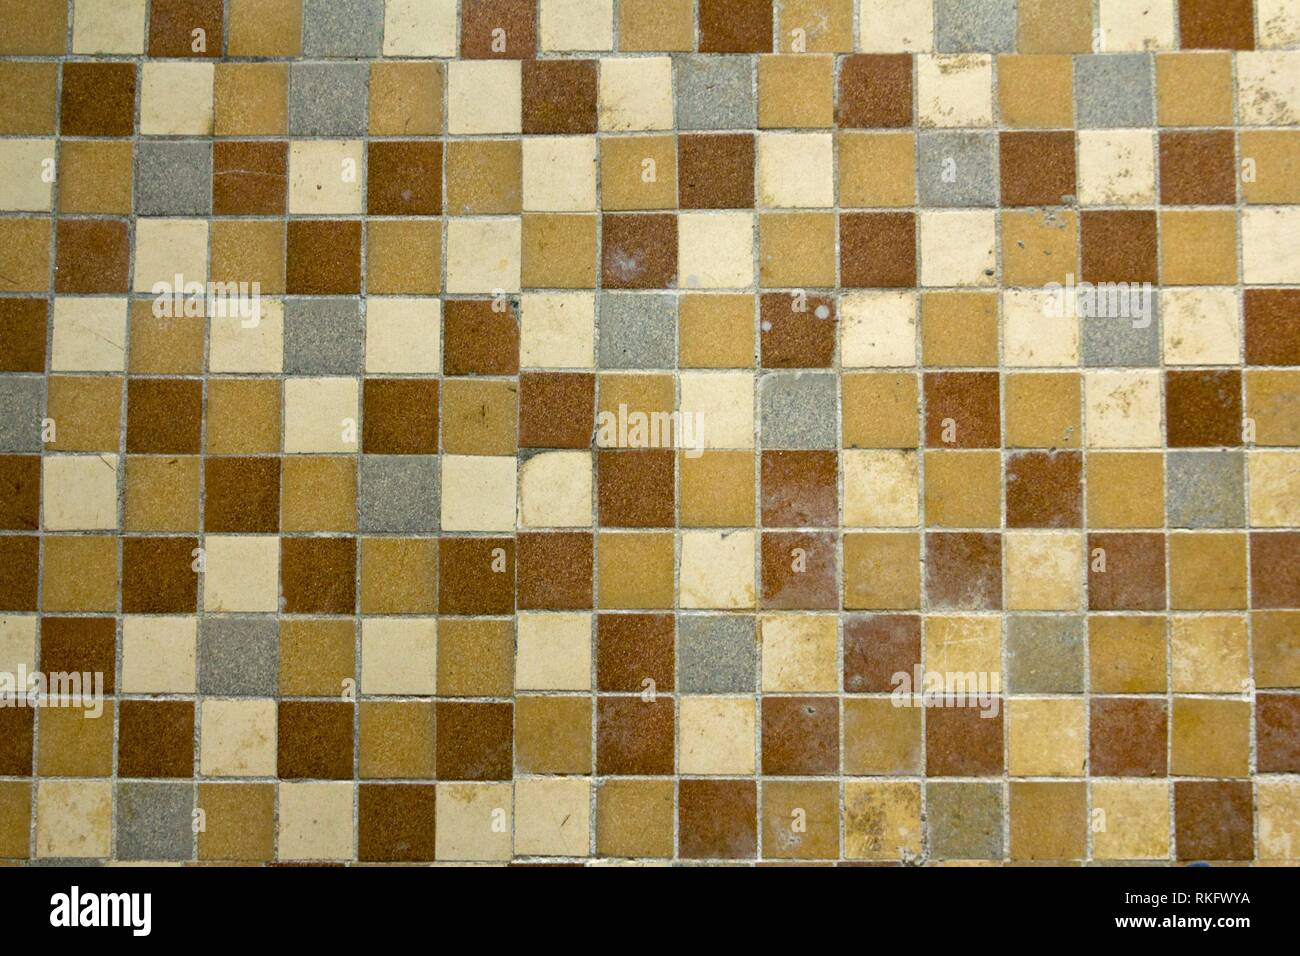 Old distressed floor tiles. Small size in fifties or sixties colours. - Stock Image